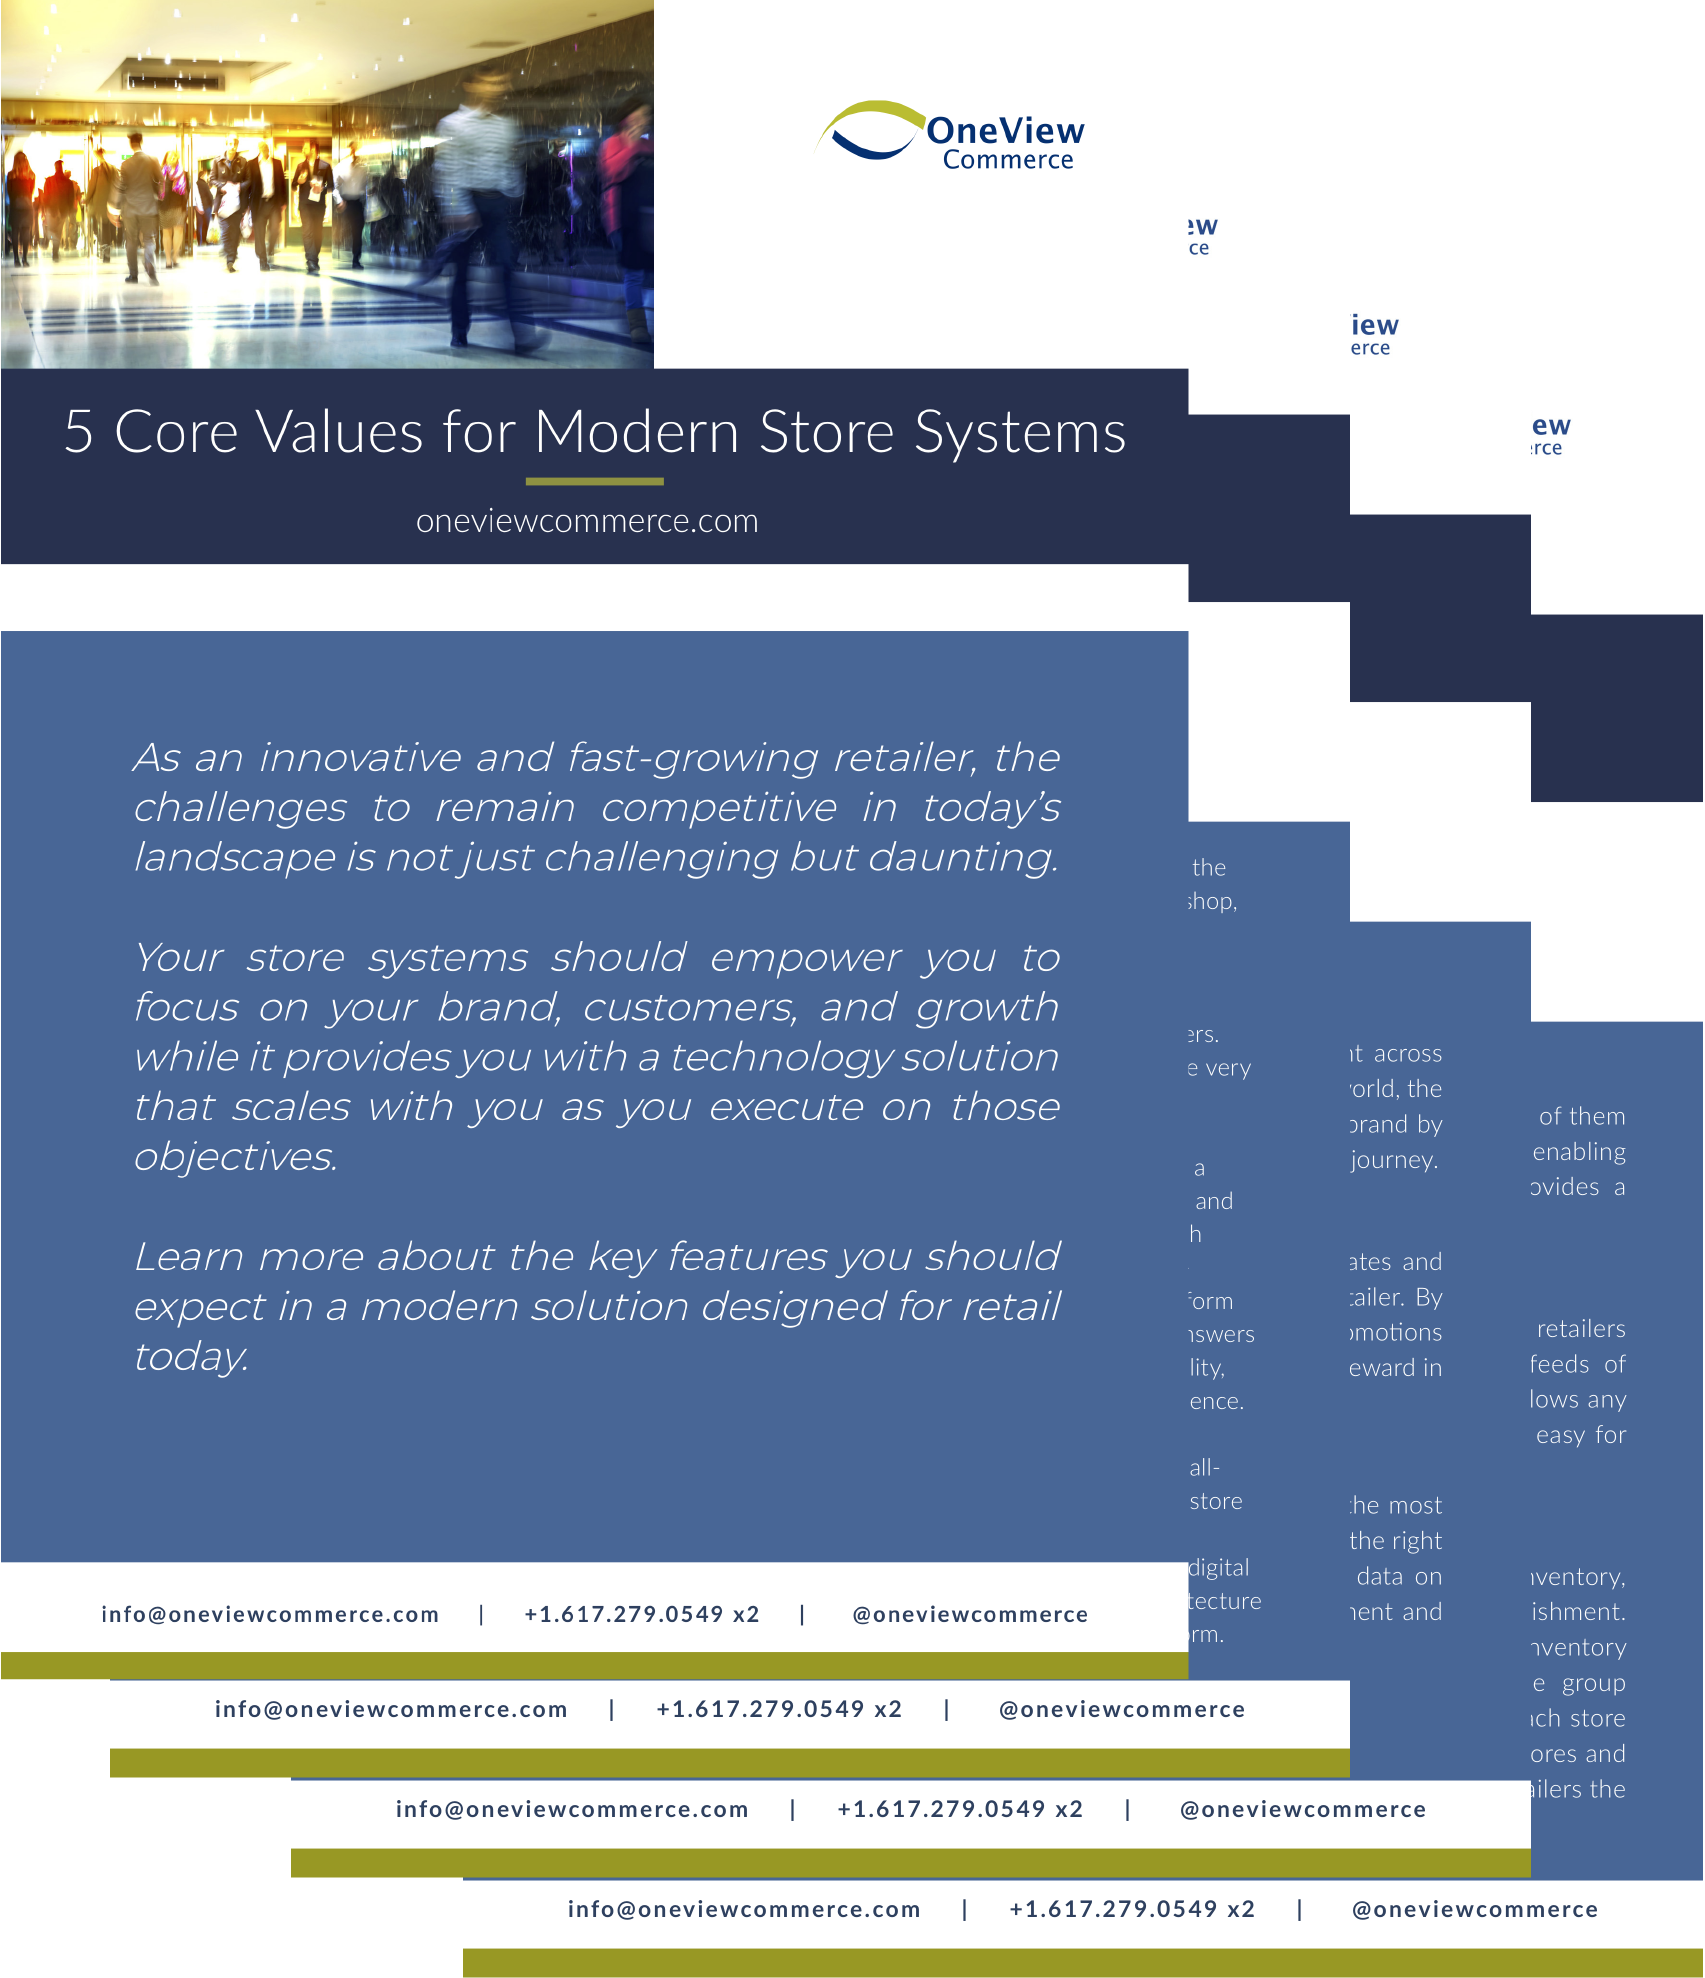 5 core values for modern store systems